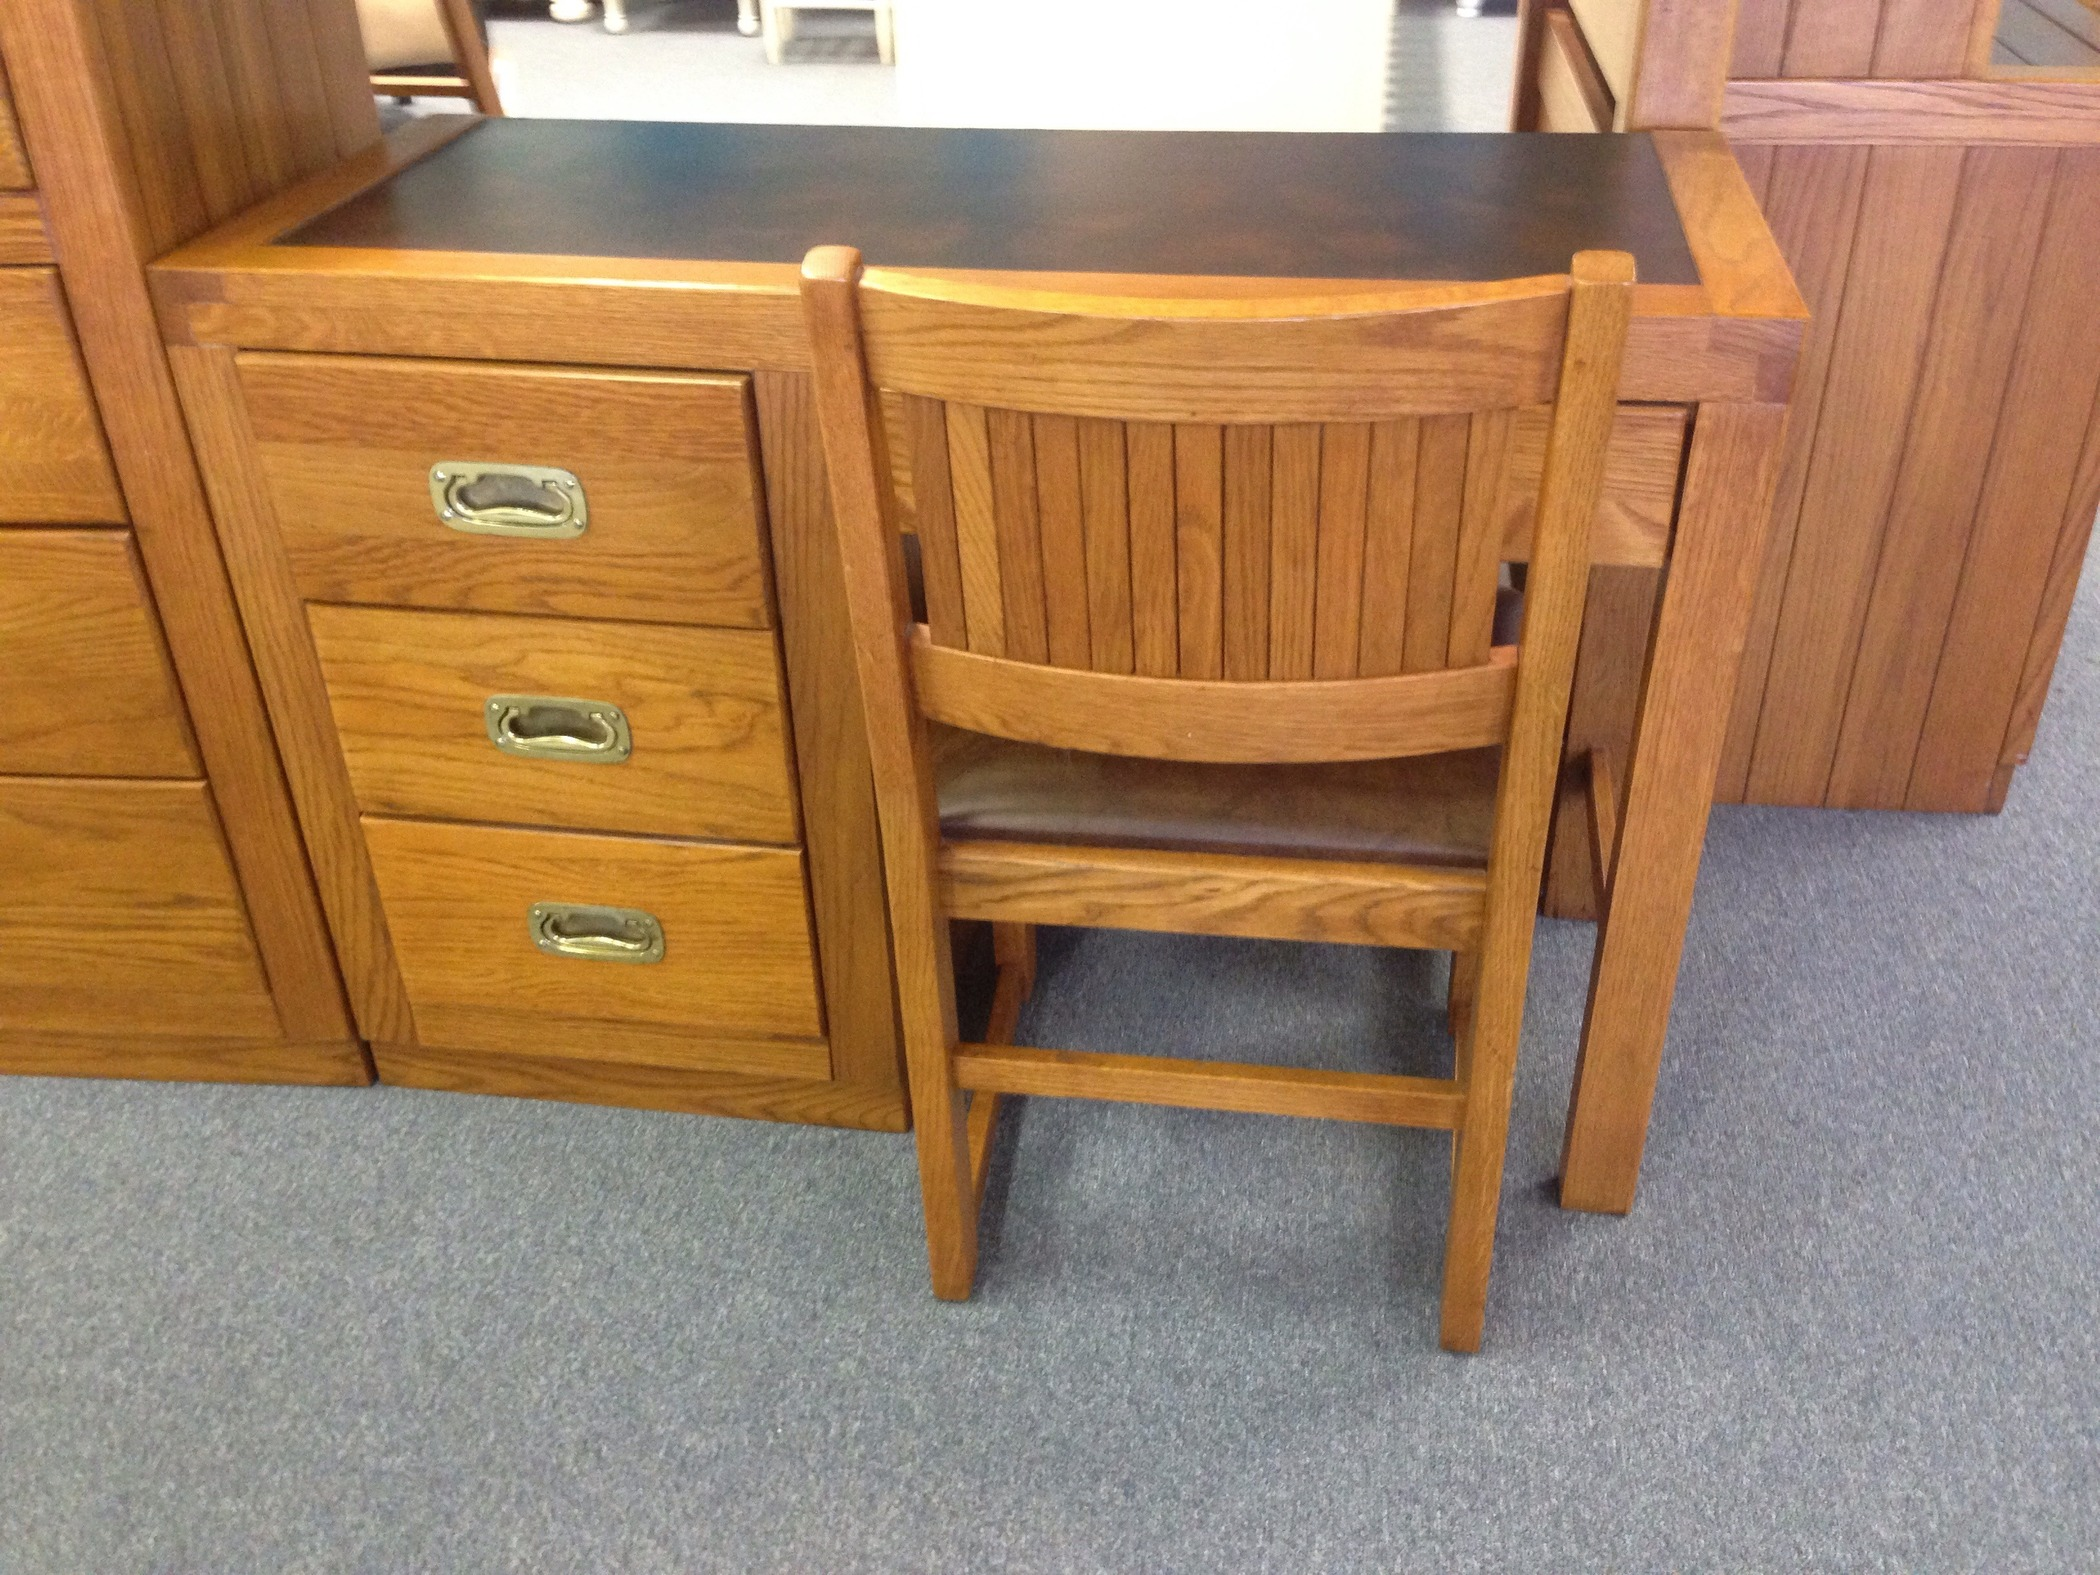 YOUNG HINKLE DESK WITH CHAIR